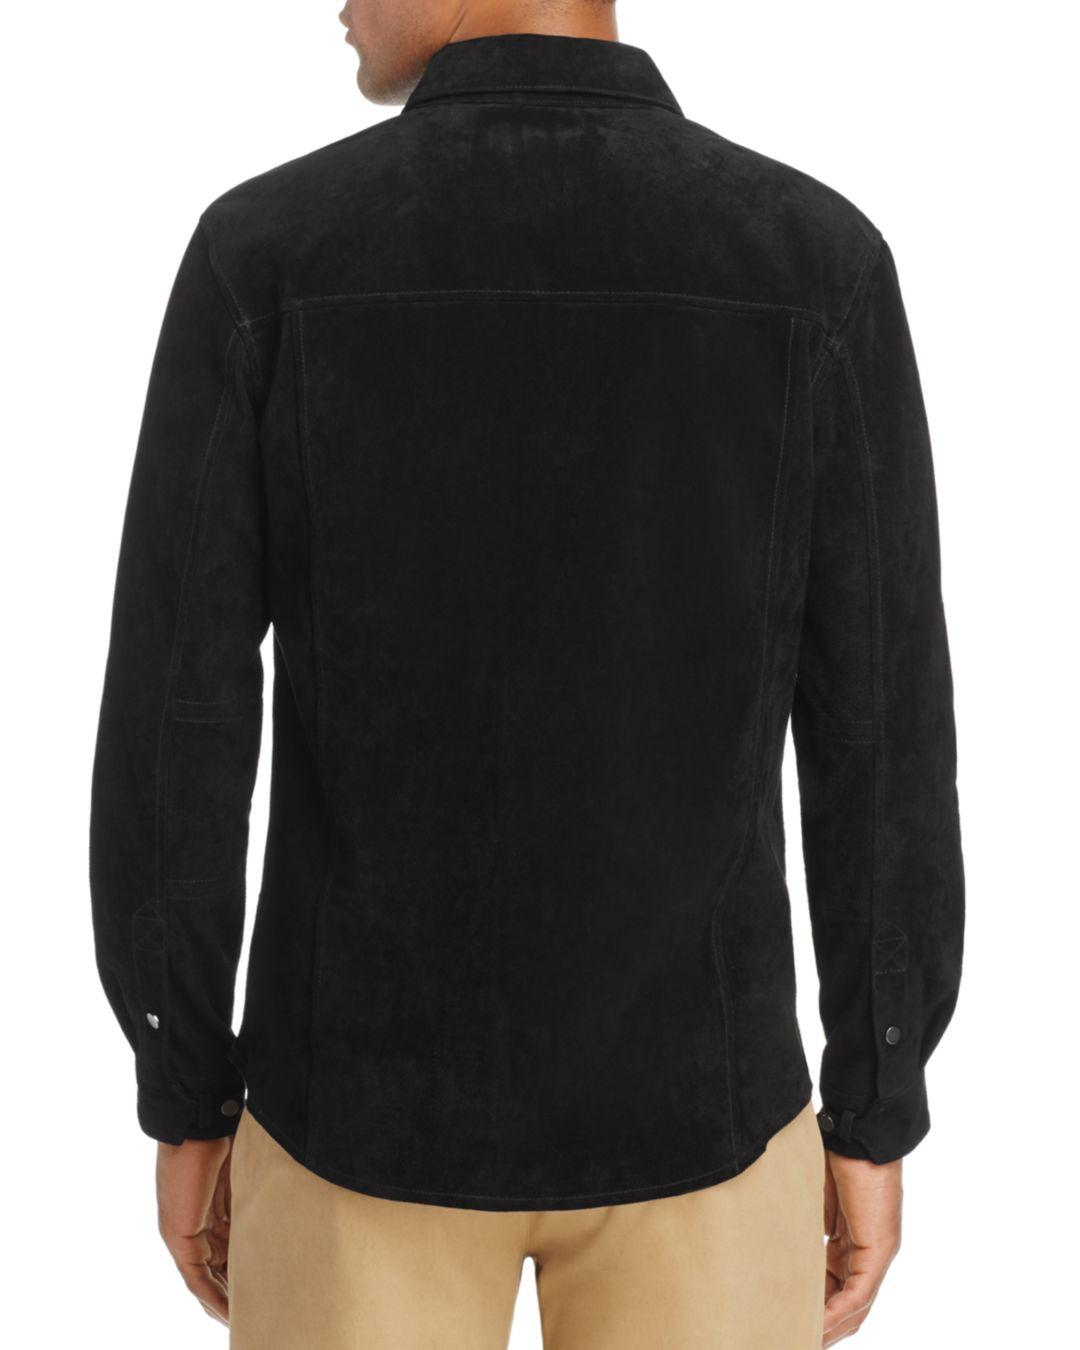 Blank NYC Blank Nyc Suede Shirt Jacket in Black for Men